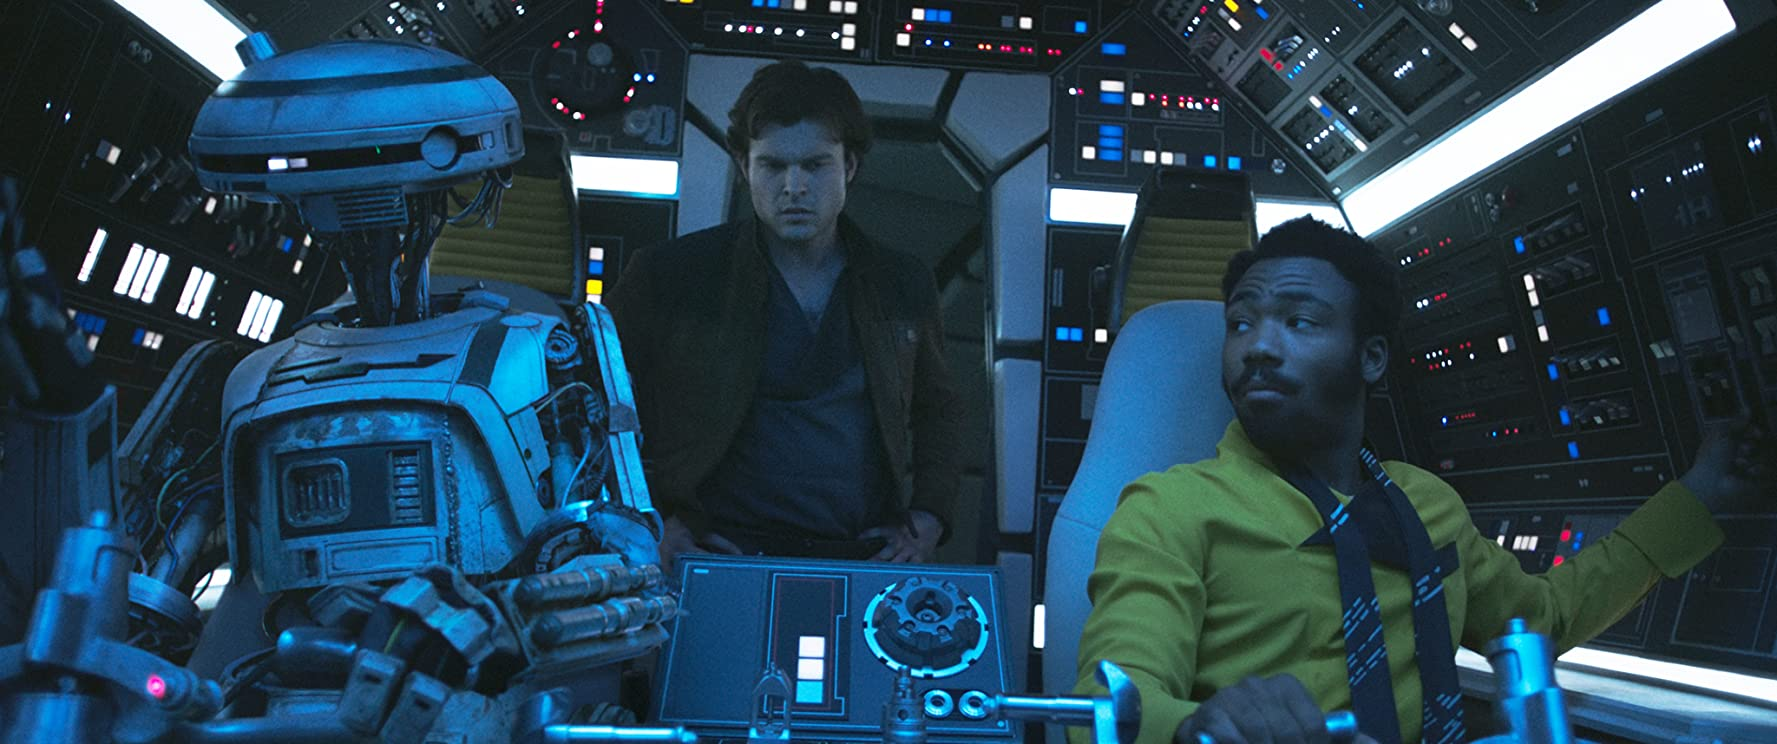 Donald Glover, Alden Ehrenreich, and Phoebe Waller-Bridge in Solo: A Star Wars Story (2018)